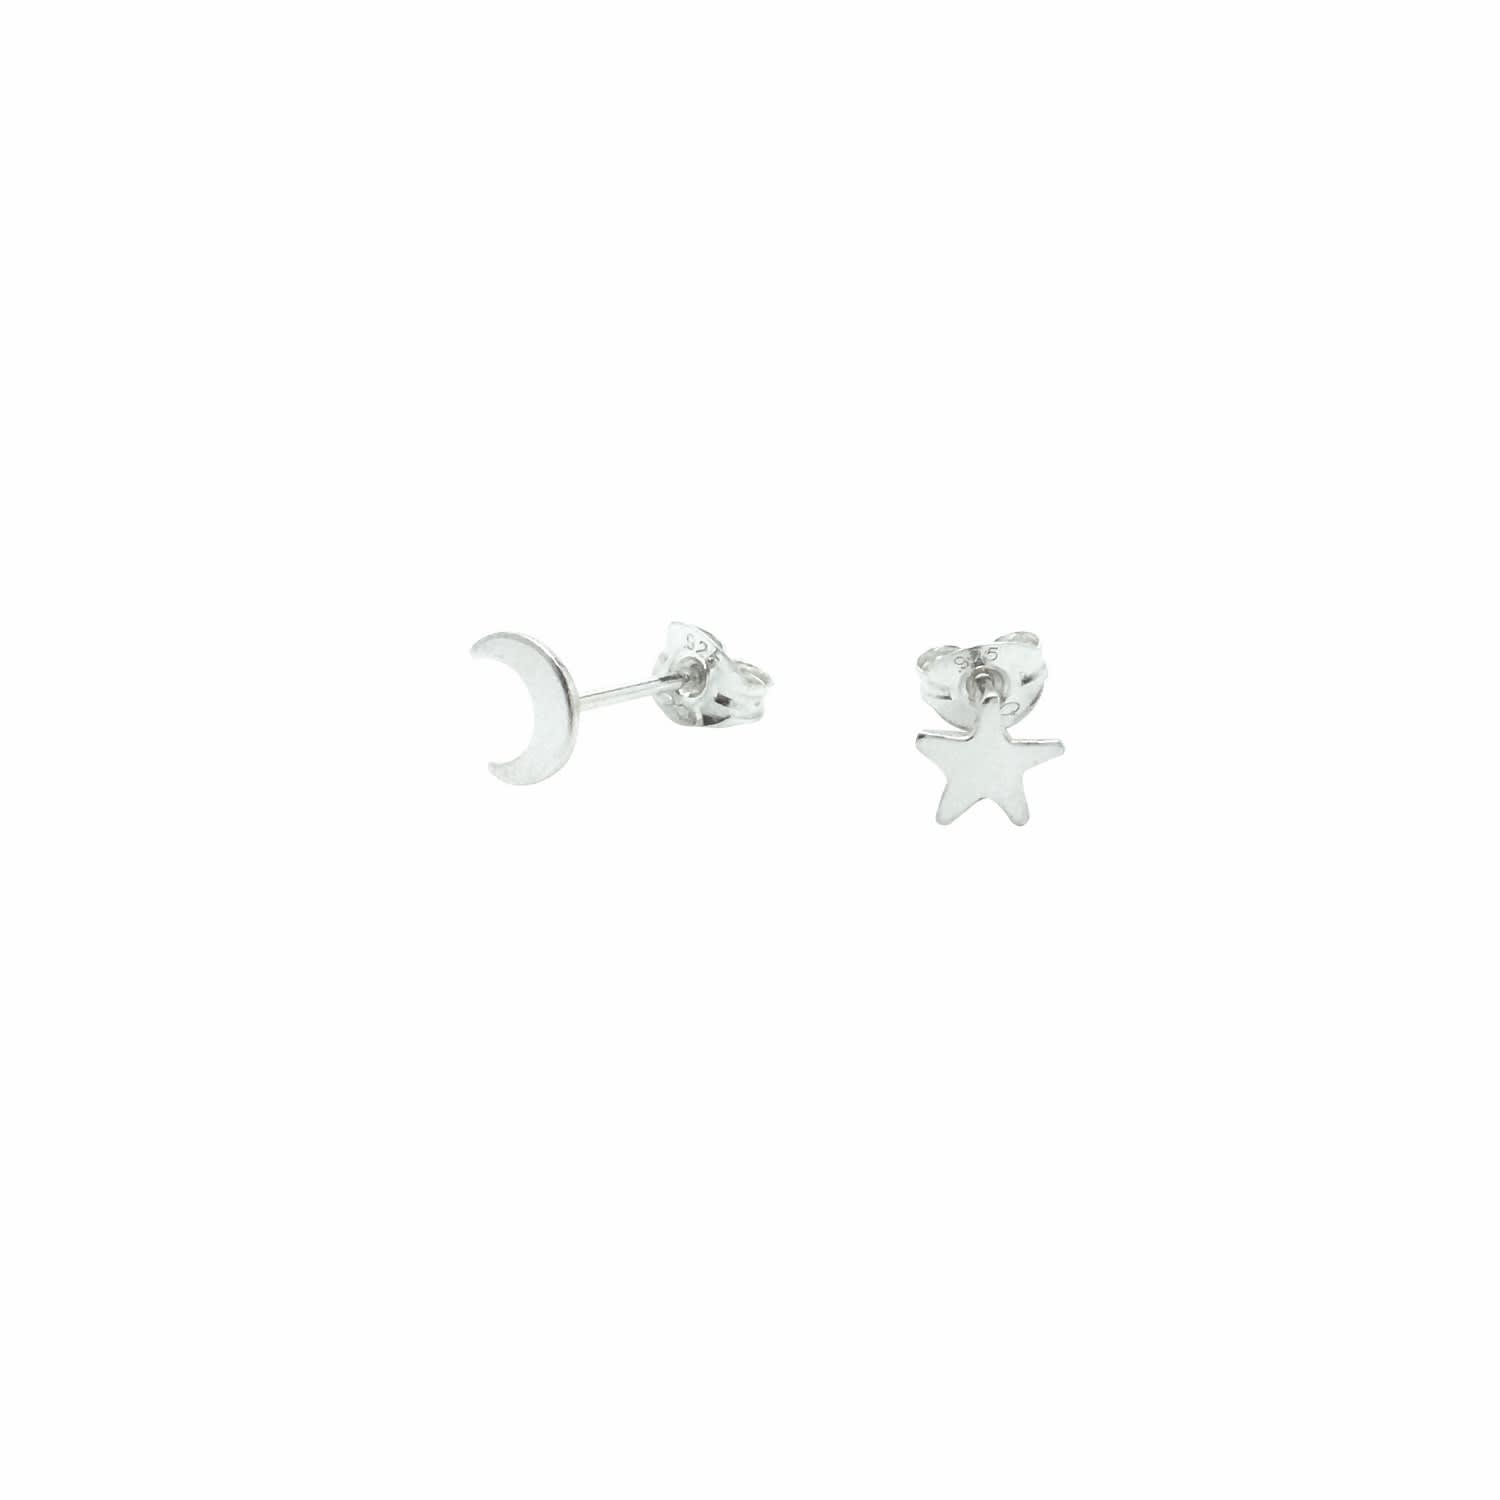 e5e8c98f9 Tiny Moon and Star Stud Earrings Sterling Silver | Lucy Ashton ...